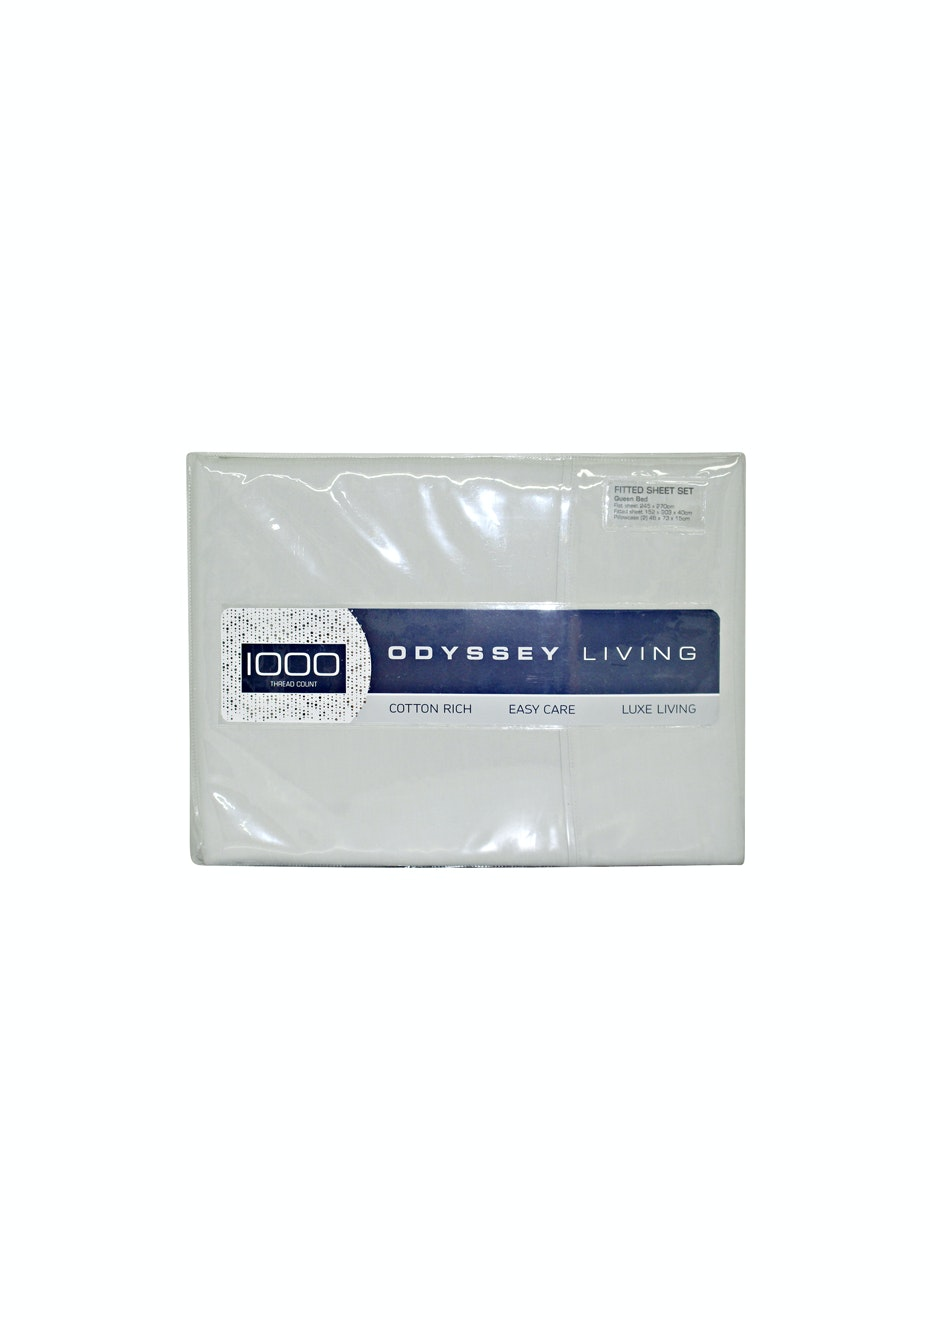 Odyssey Living 1000 Thread Count – Cotton Rich Sheet Sets -Silver - King Bed